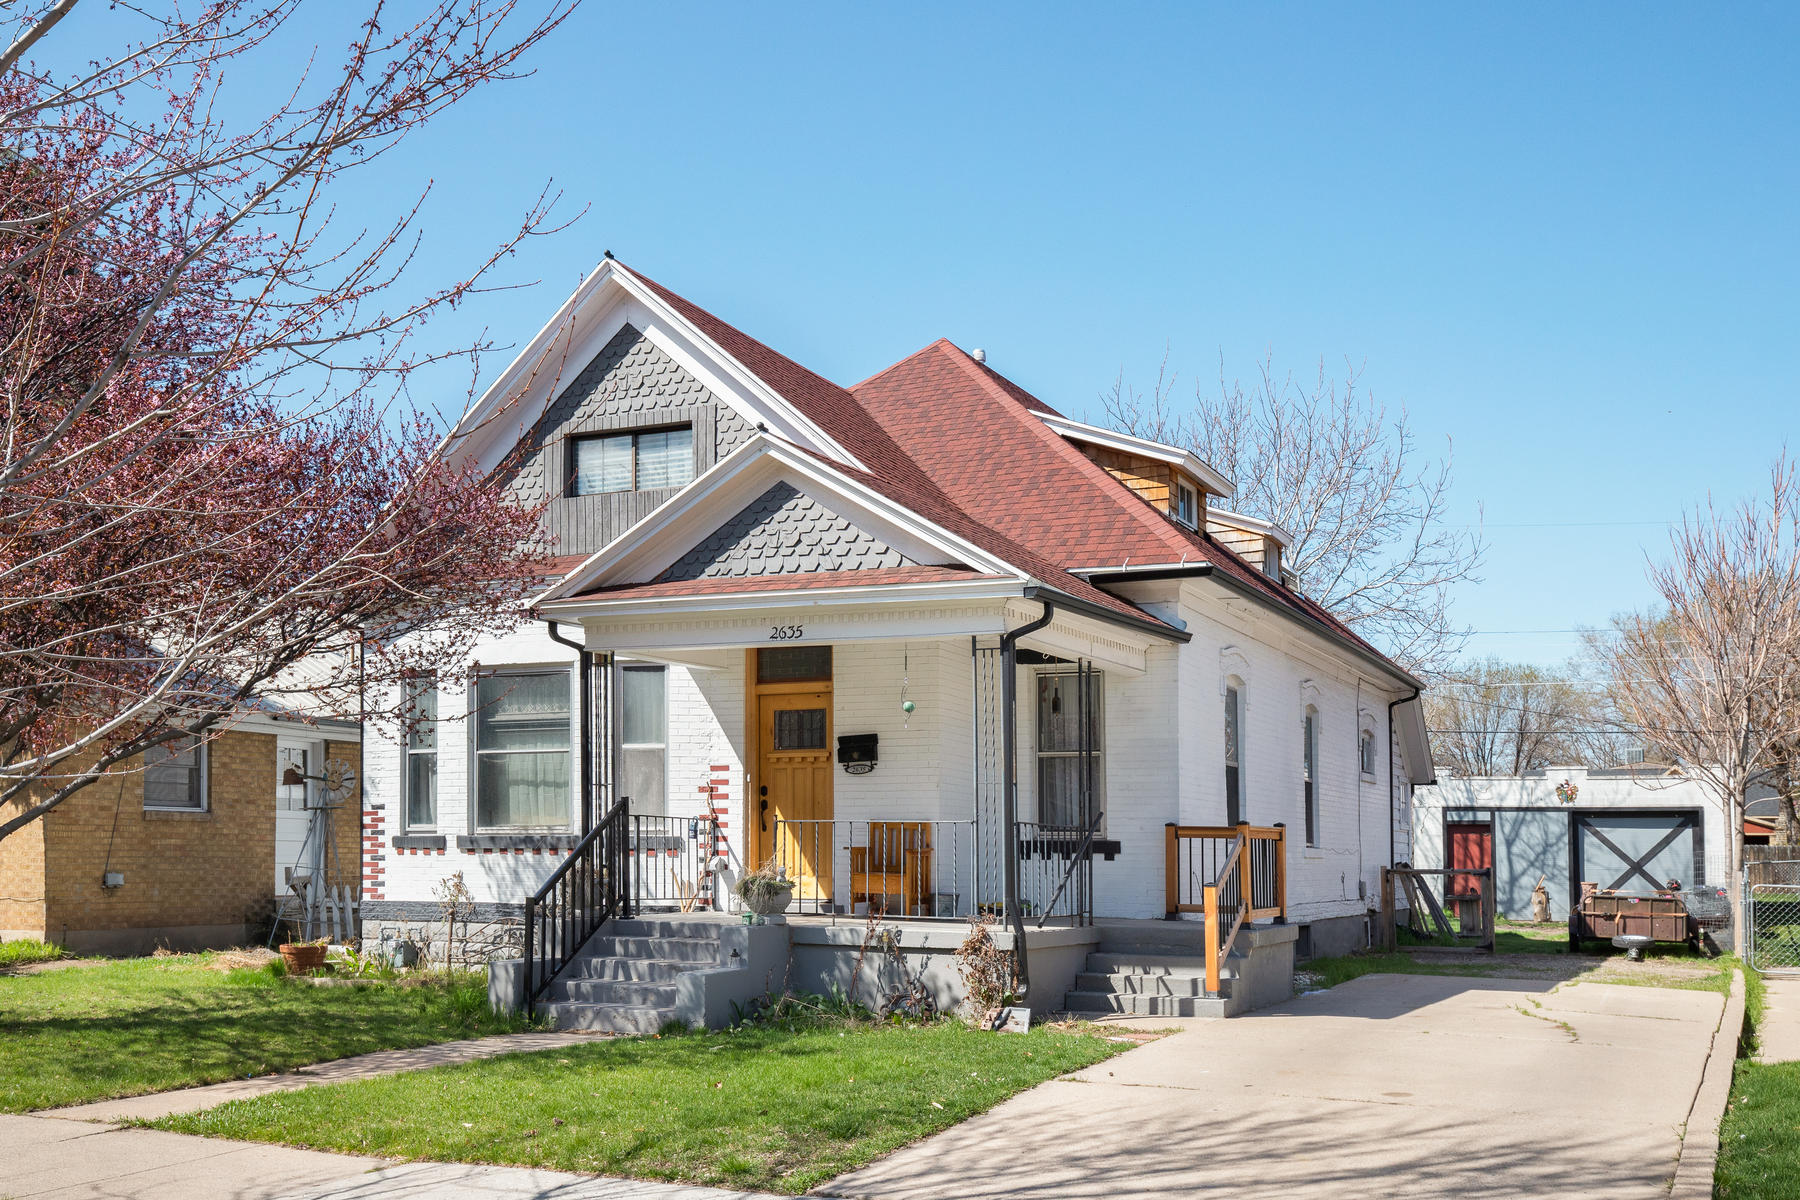 Single Family Homes for Sale at Charming 2 Story Near Historic District in Ogden 2635 Madison Ave Ogden, Utah 84401 United States